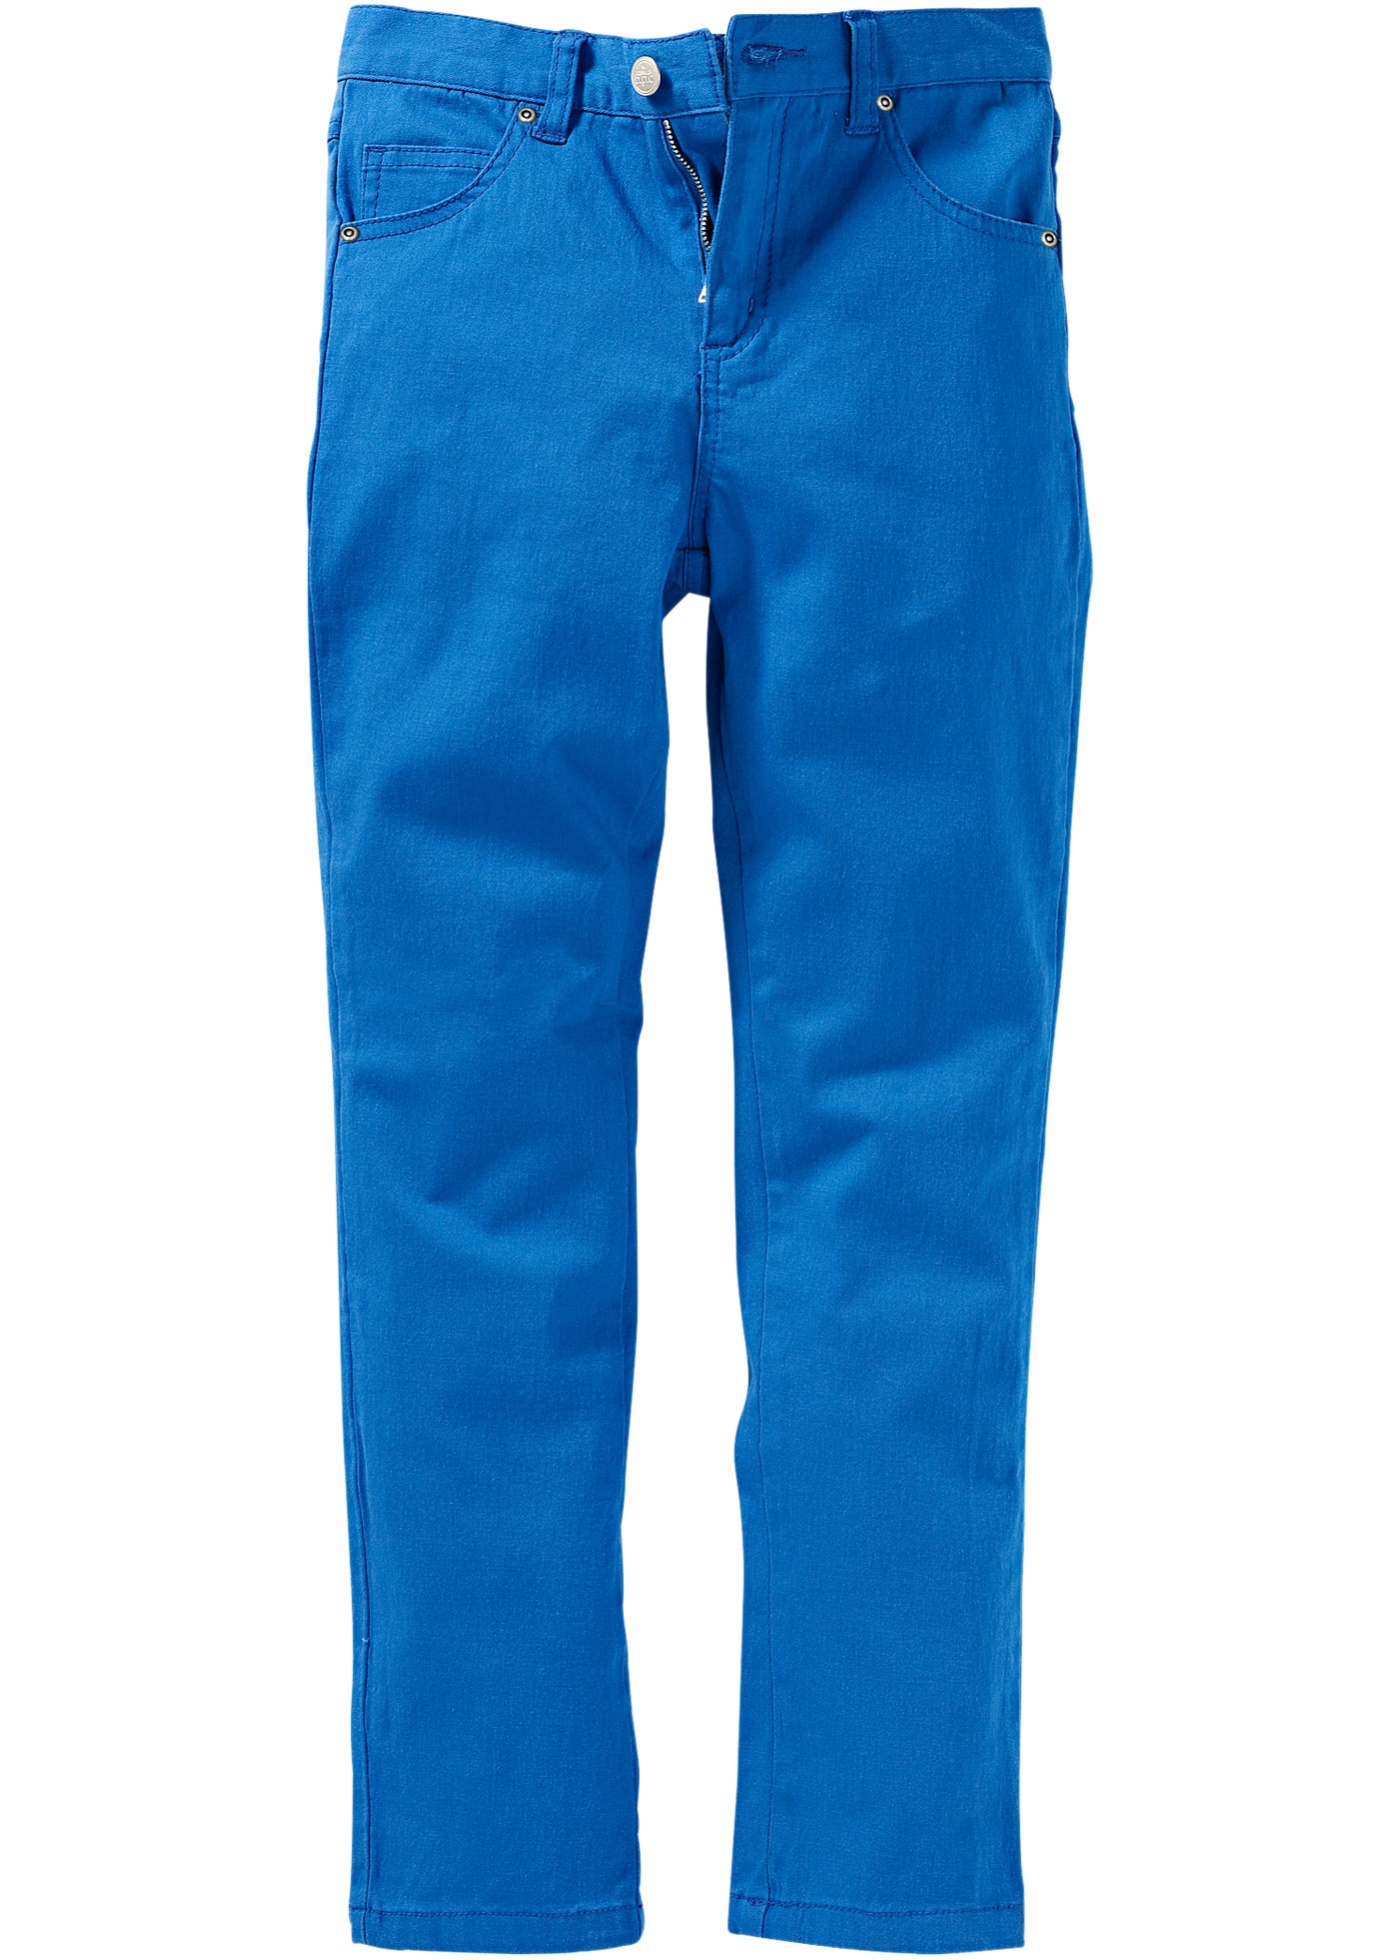 Twillhose Slim Fit, extraweit